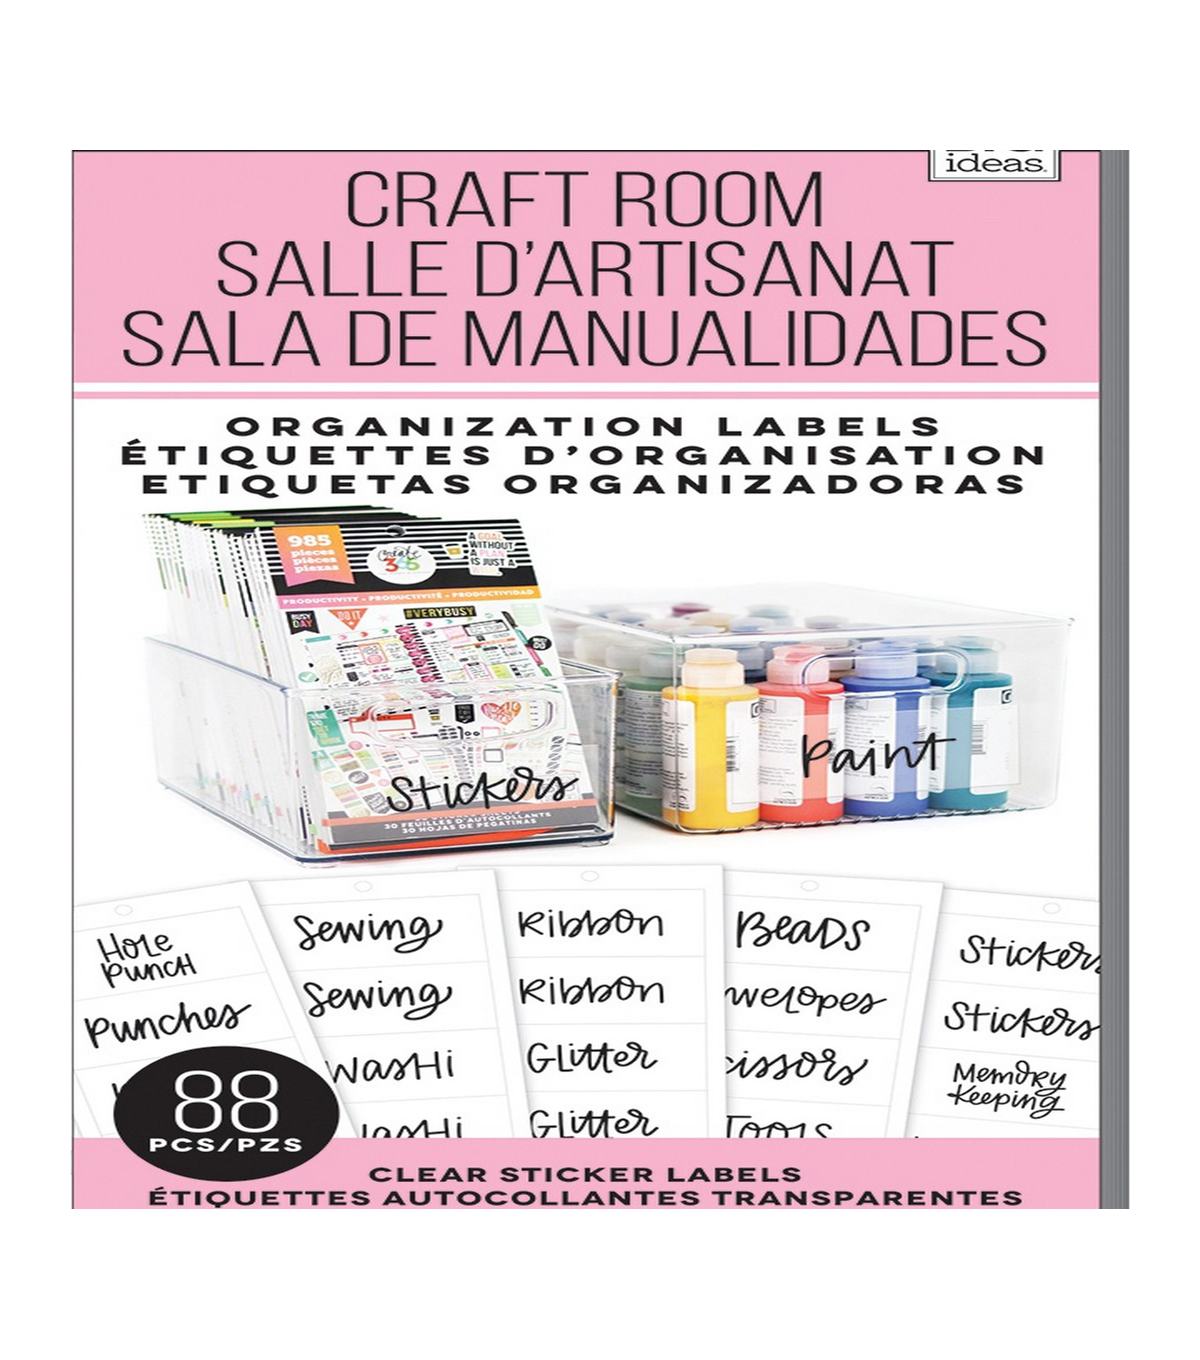 Me my big ideas 88 pk clear sticker labels craft room